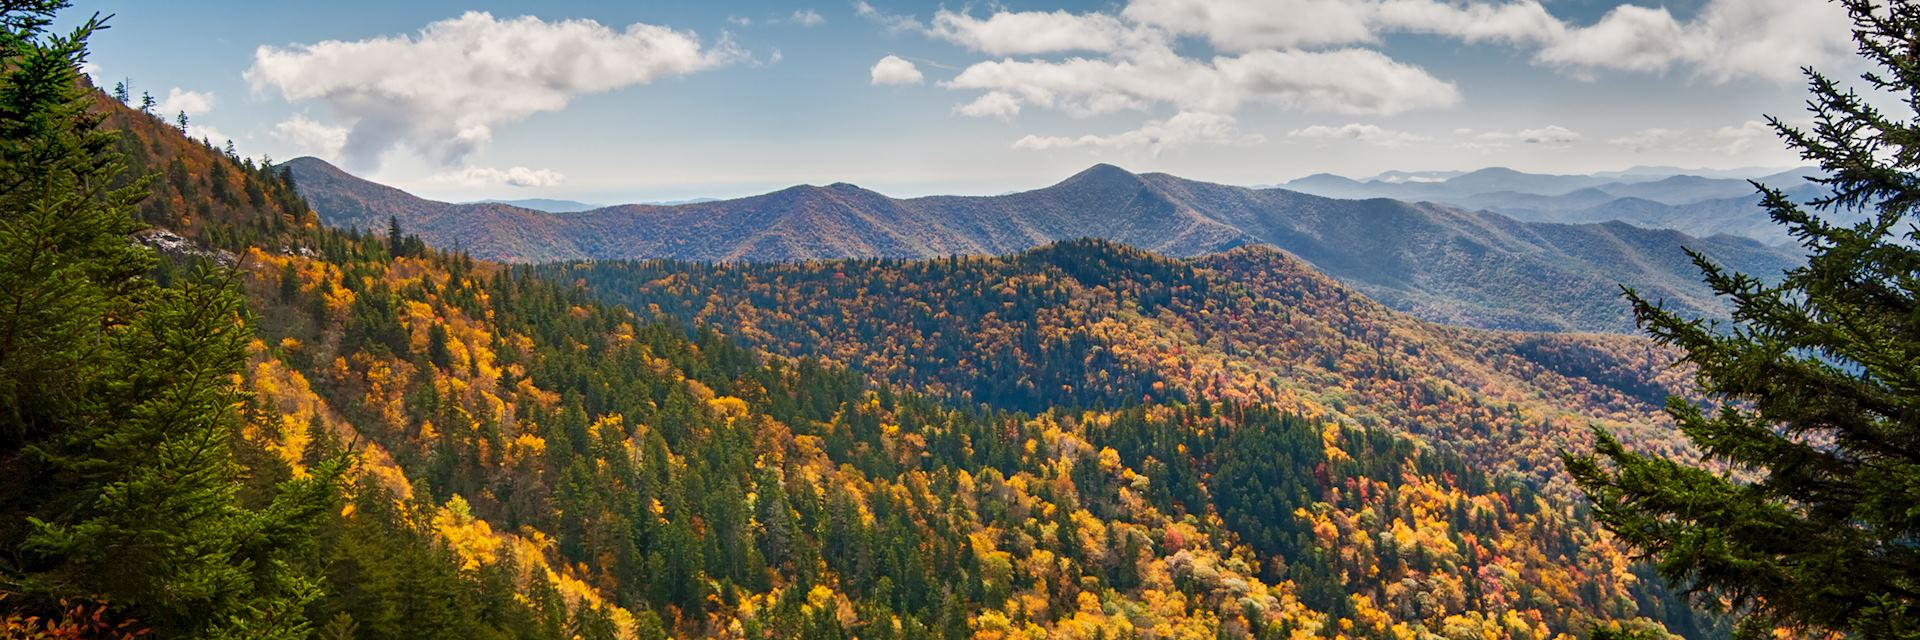 Mountains above the Blue Ridge Parkway